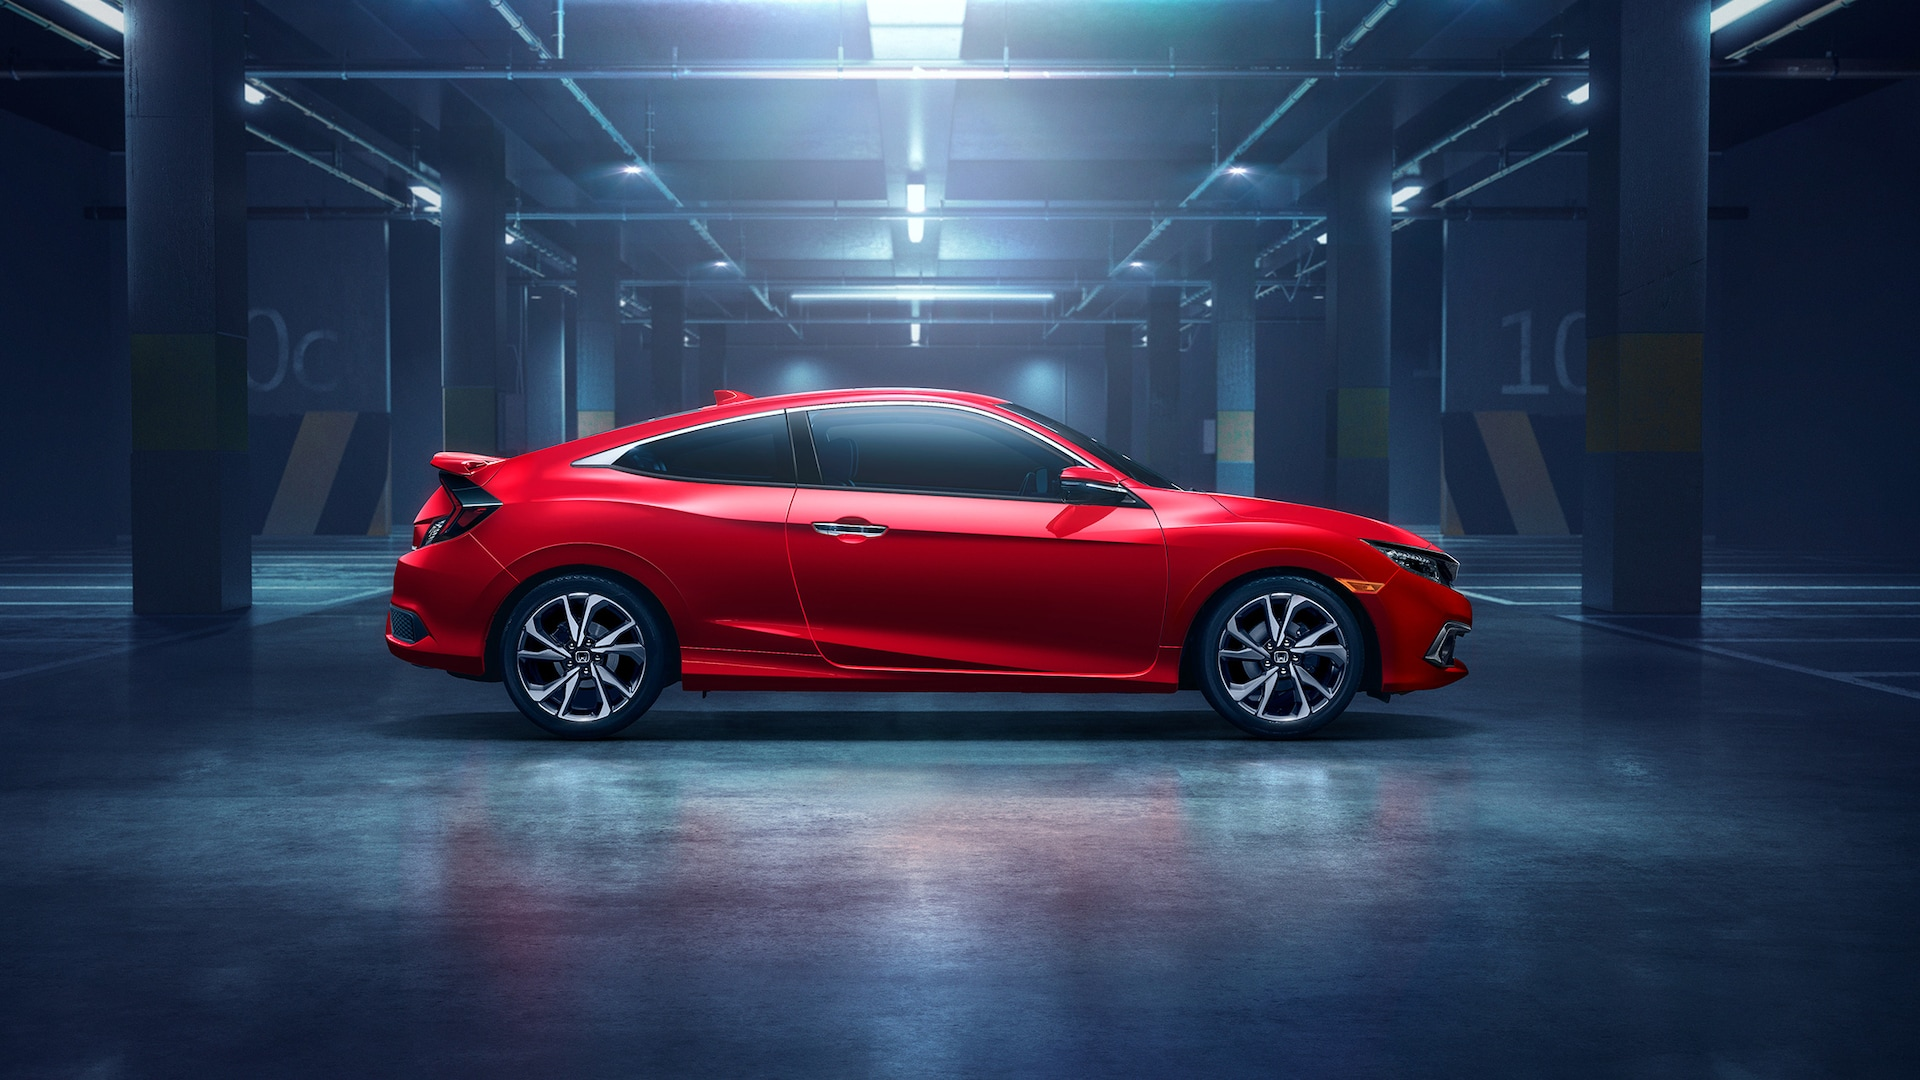 Passenger-side view of the 2020 Honda Civic Touring Coupe in Rallye Red, parked in a garage.